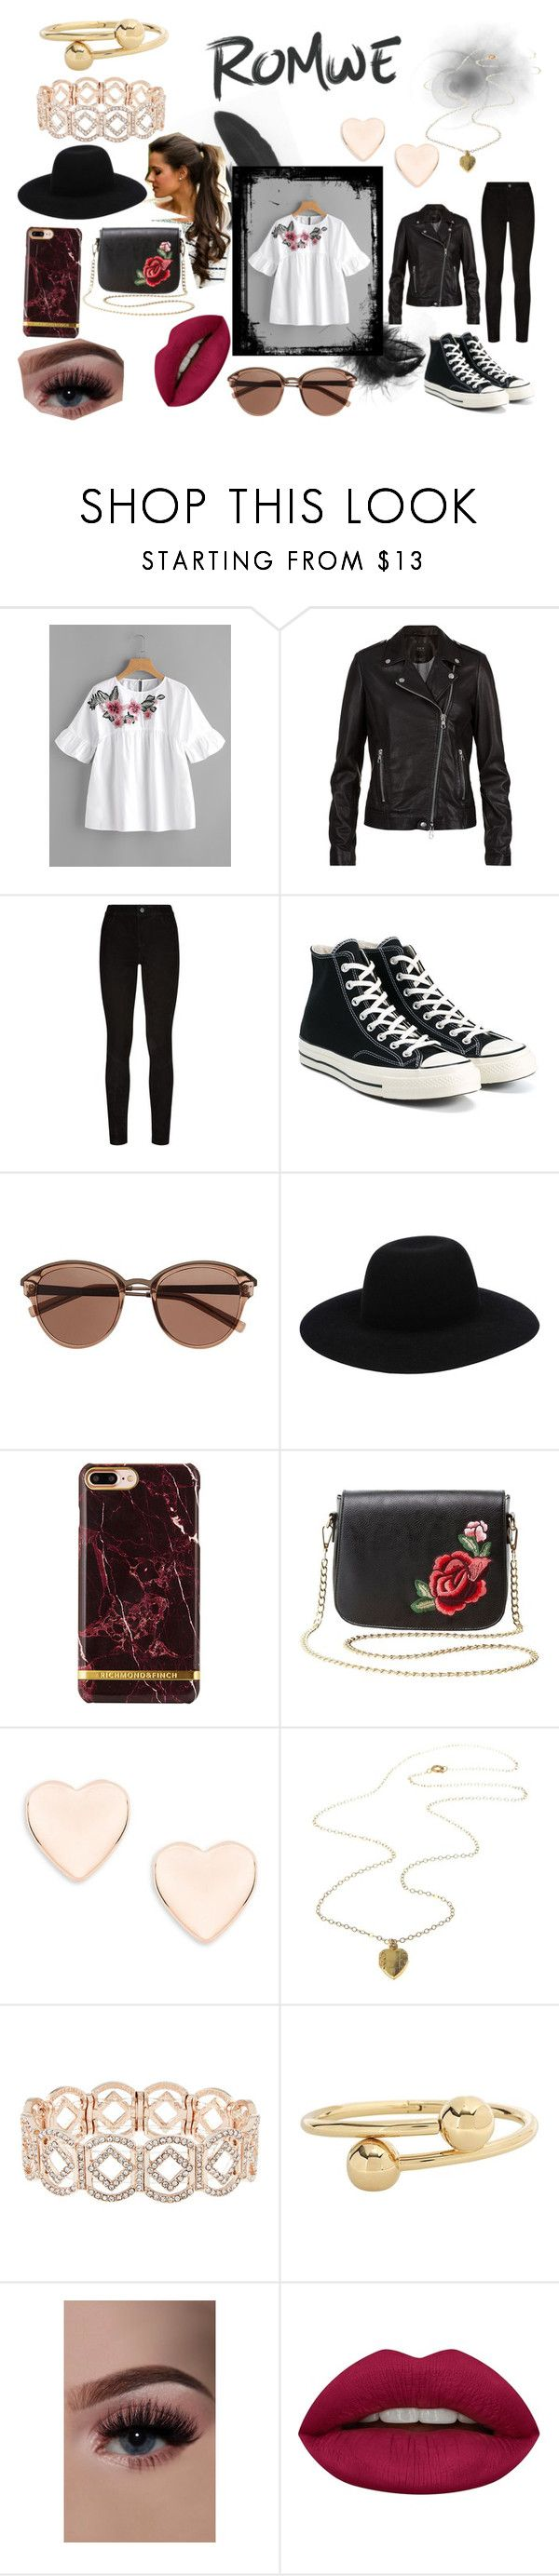 """""""Romwe Date Night"""" by fluttercord on Polyvore featuring SET, Paige Denim, Converse, Witchery, Off-White, Charlotte Russe, Ted Baker, Accessorize, J.W. Anderson and Huda Beauty"""